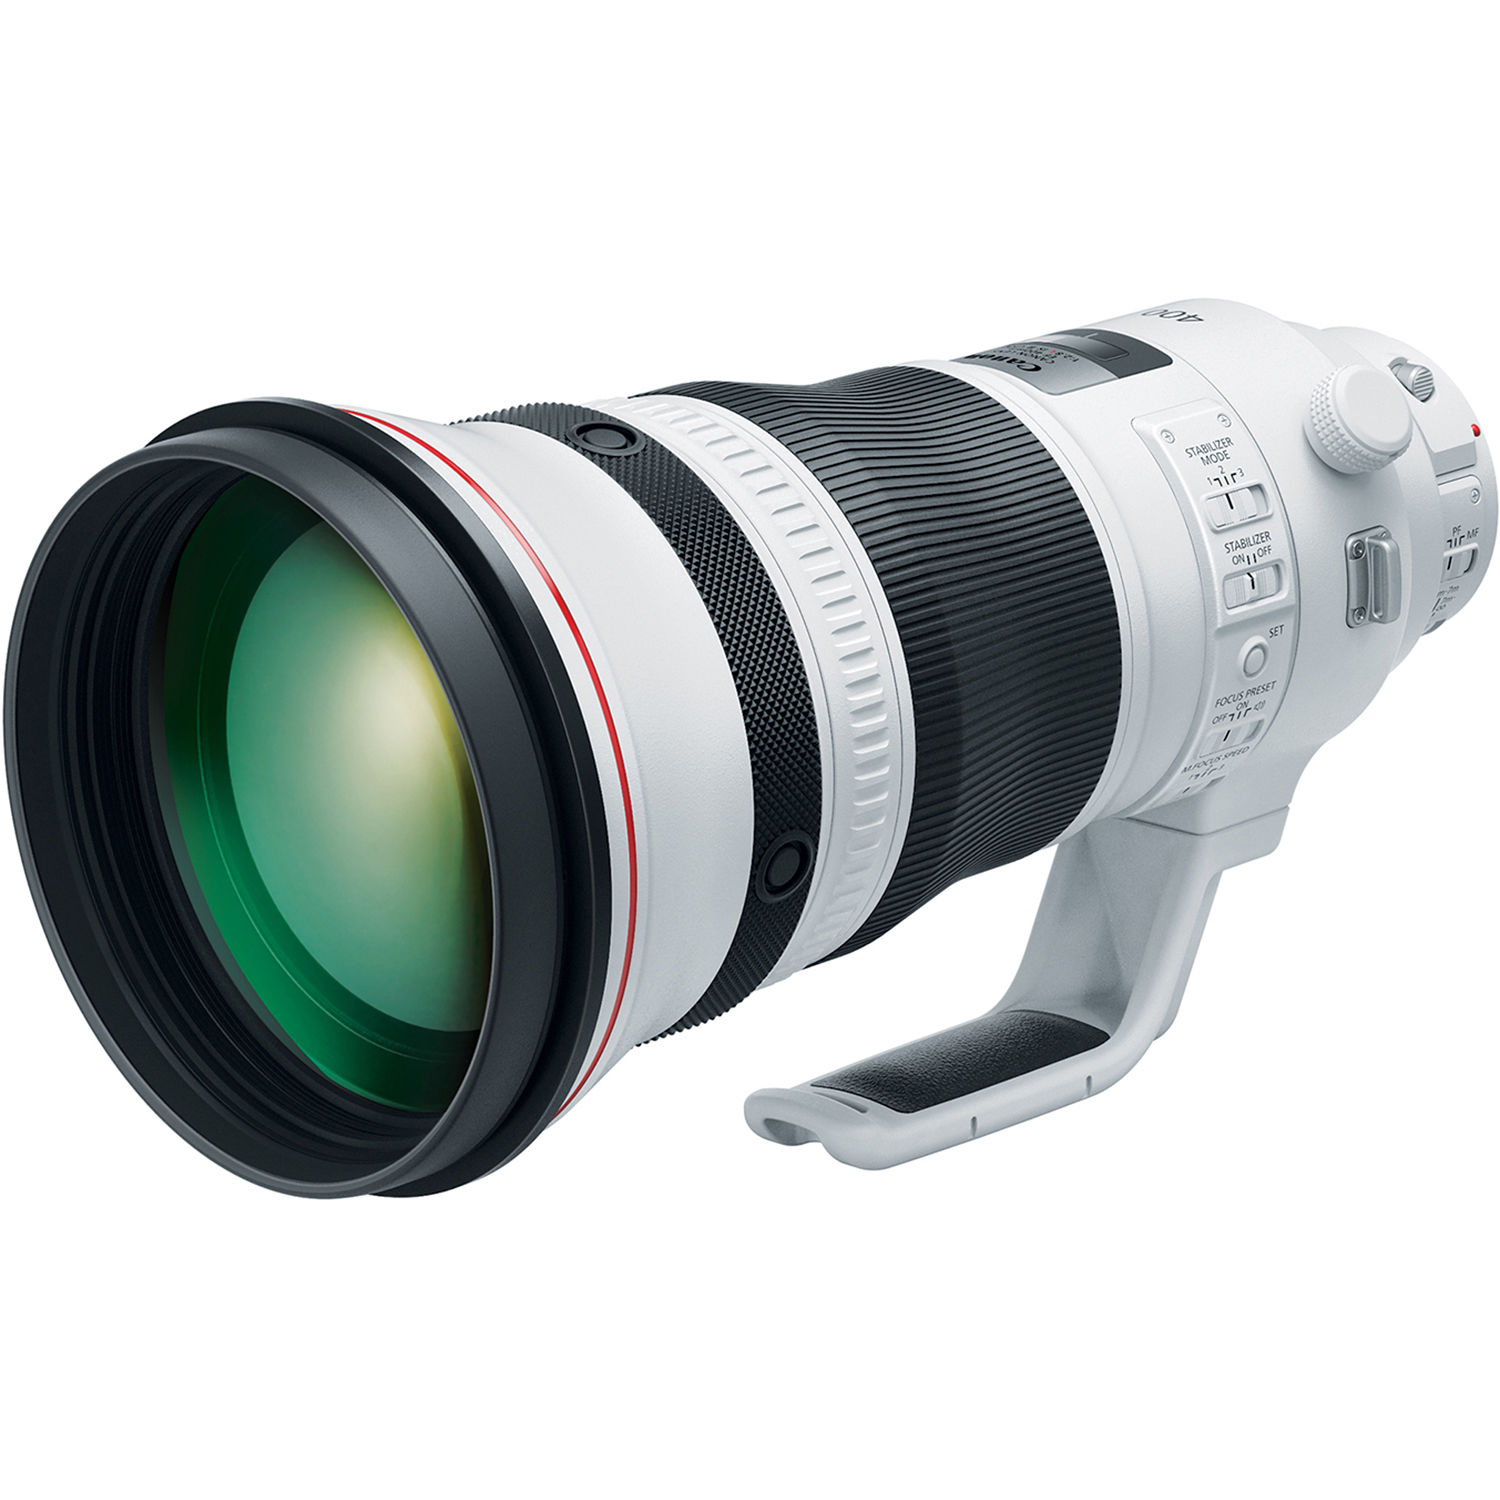 Canon Ef 400Mm F/2.8L Is Iii Usm Lens 3045C002 B&Amp;H Photo Video